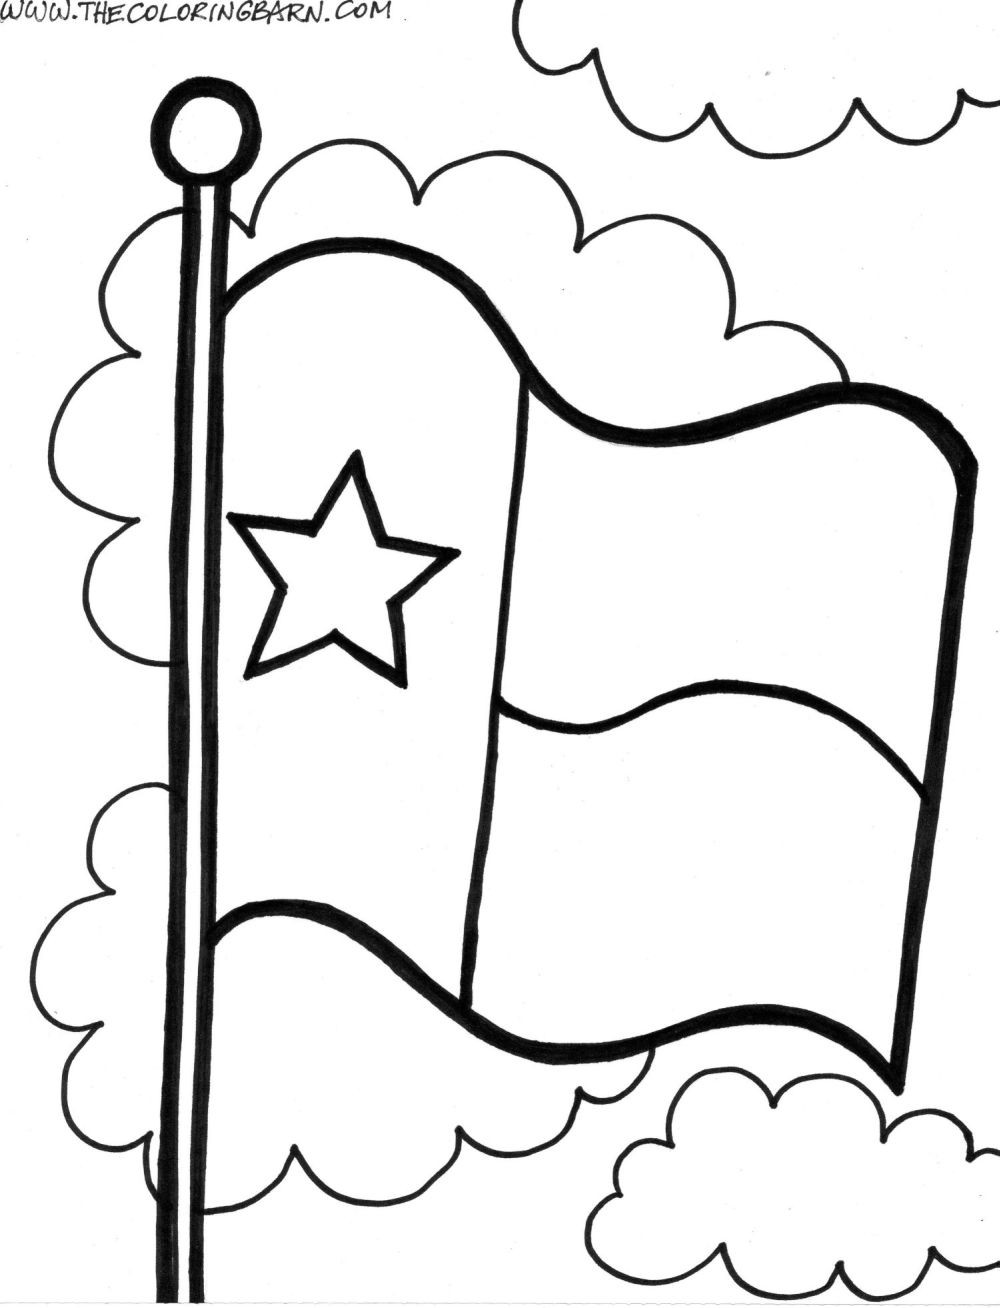 1000x1308 Oregon State Flag Coloring Page Fresh Coloring Pages United States